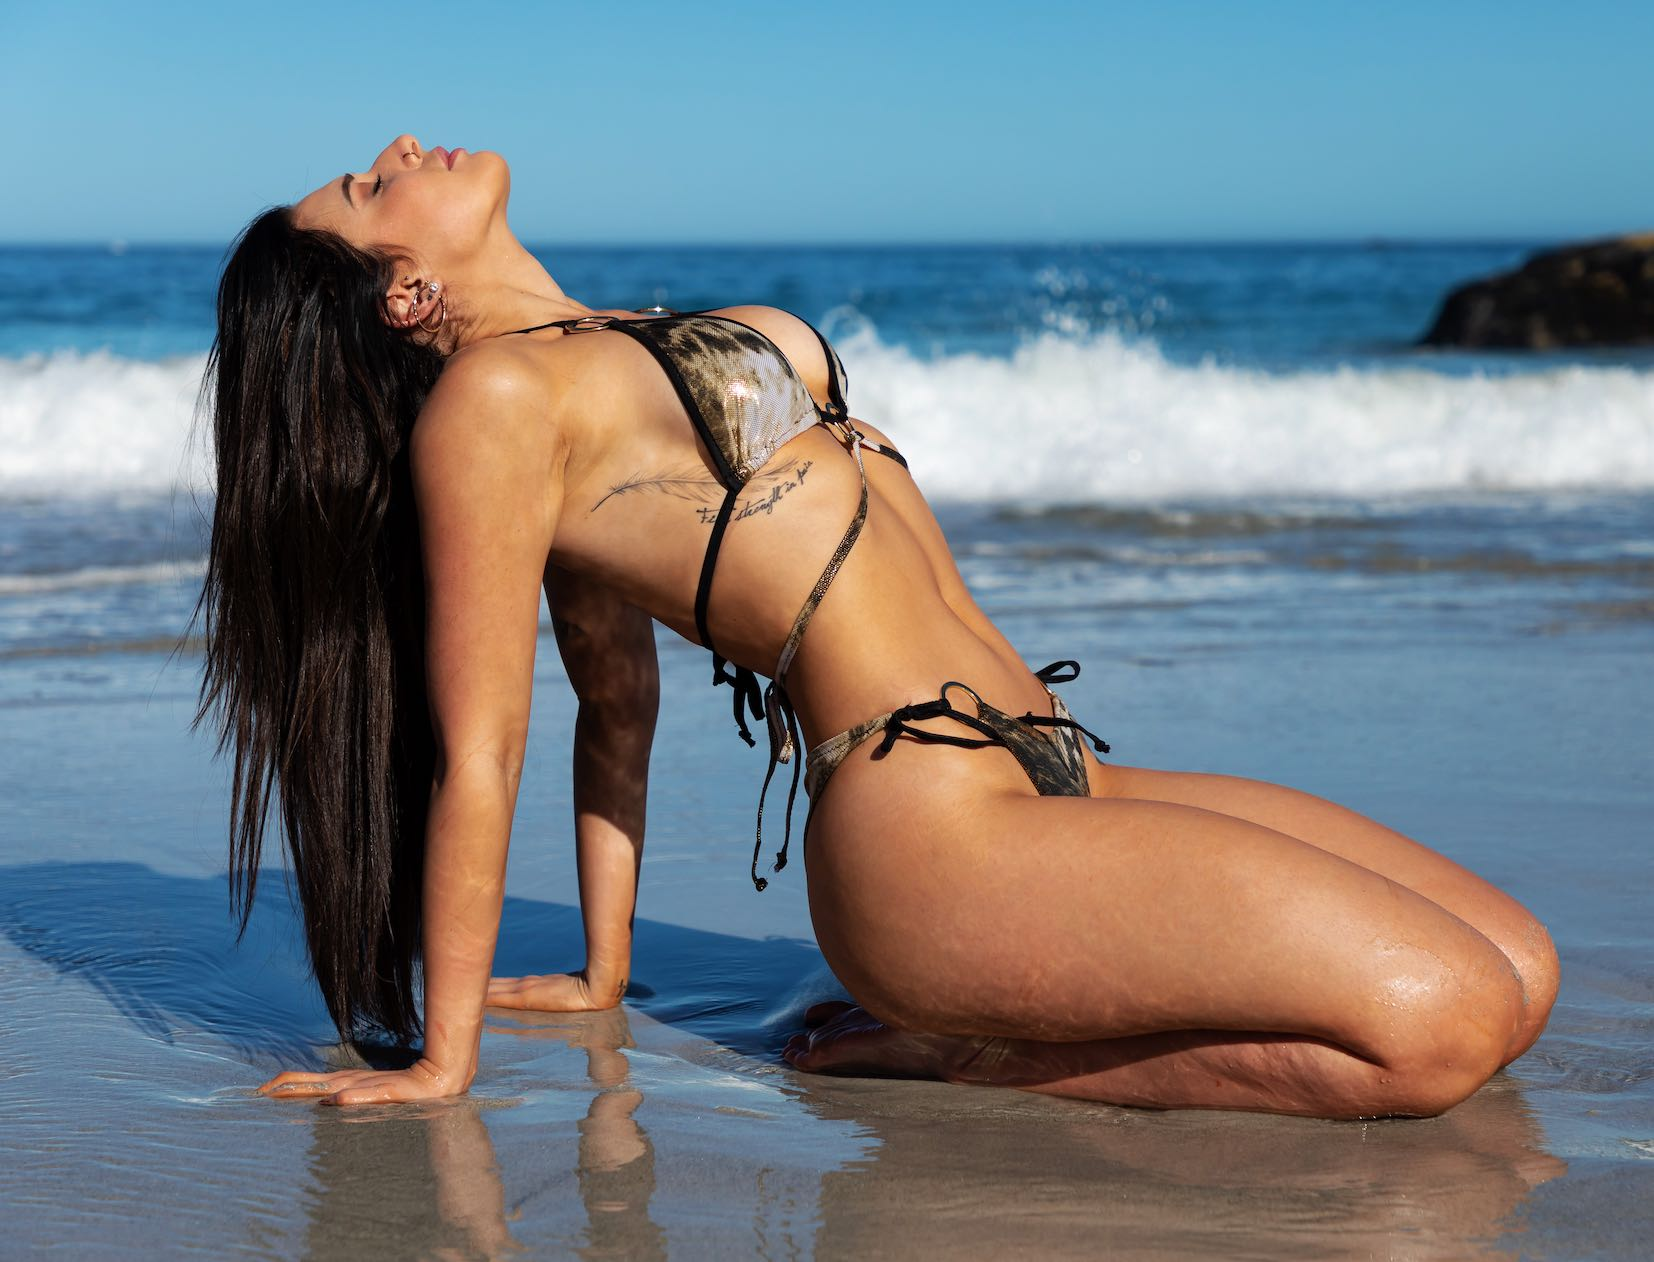 Meet Alice Orion as our LW Babe of the Week